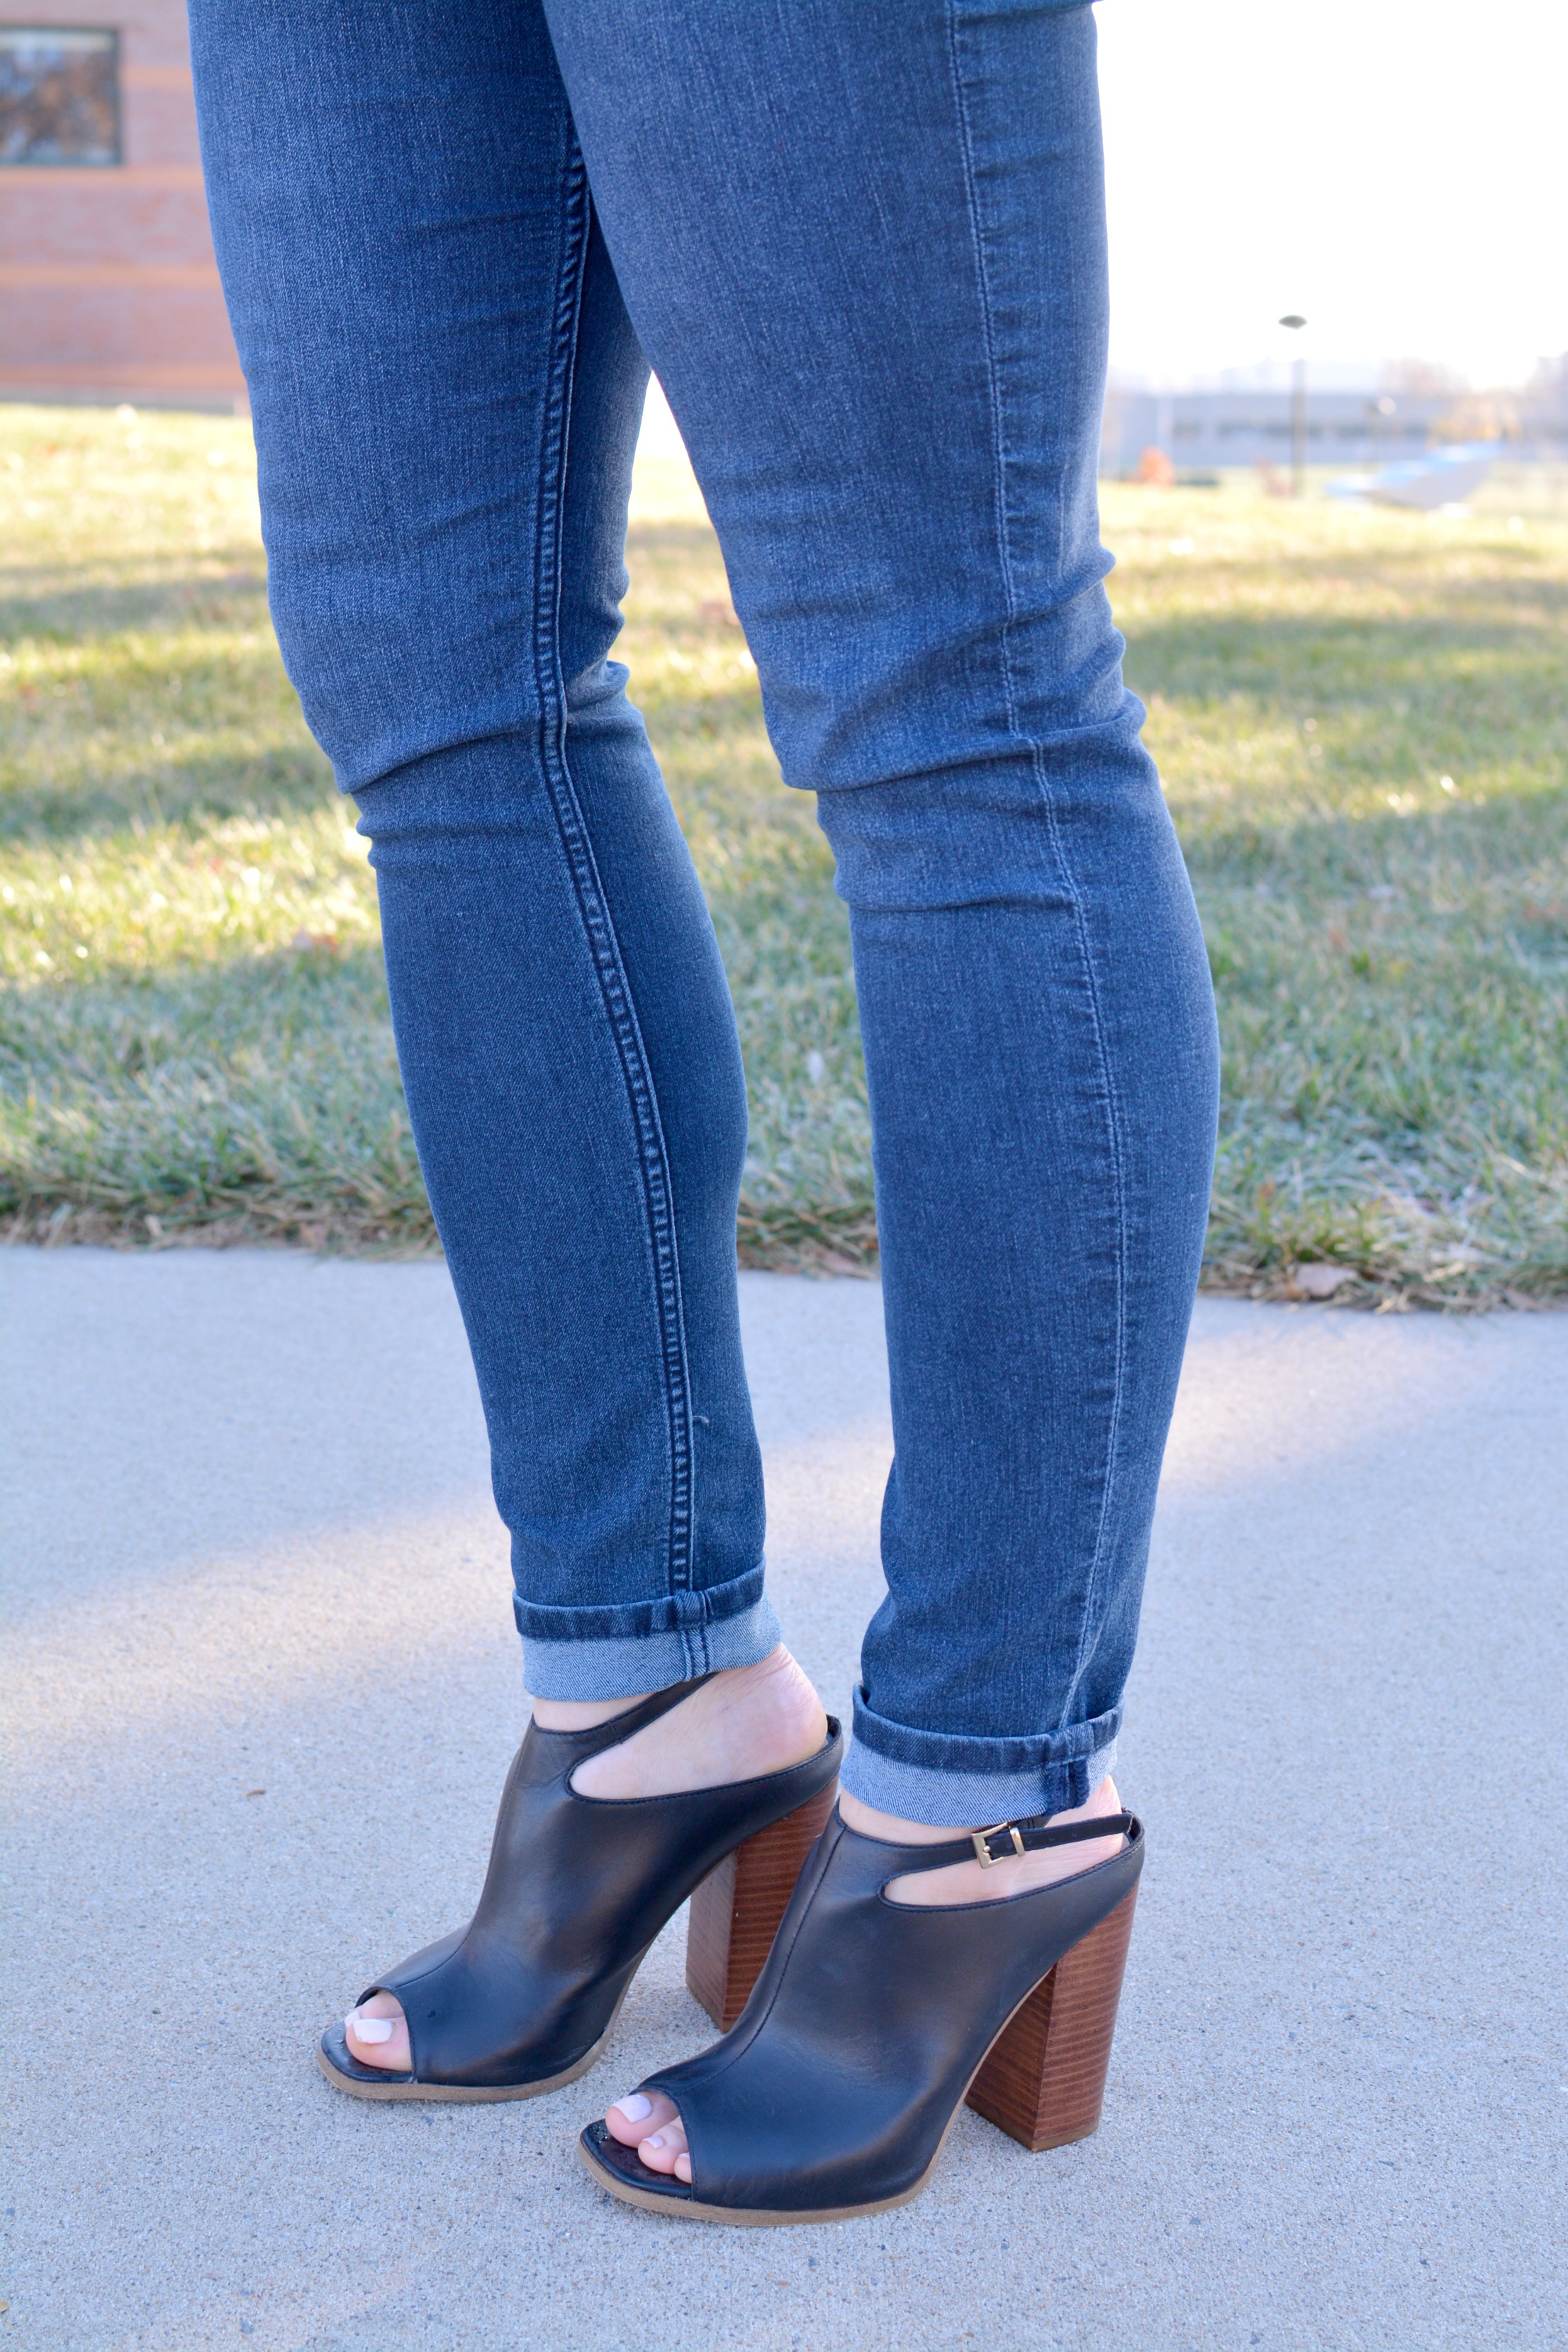 Ashley from LSR in leather mules